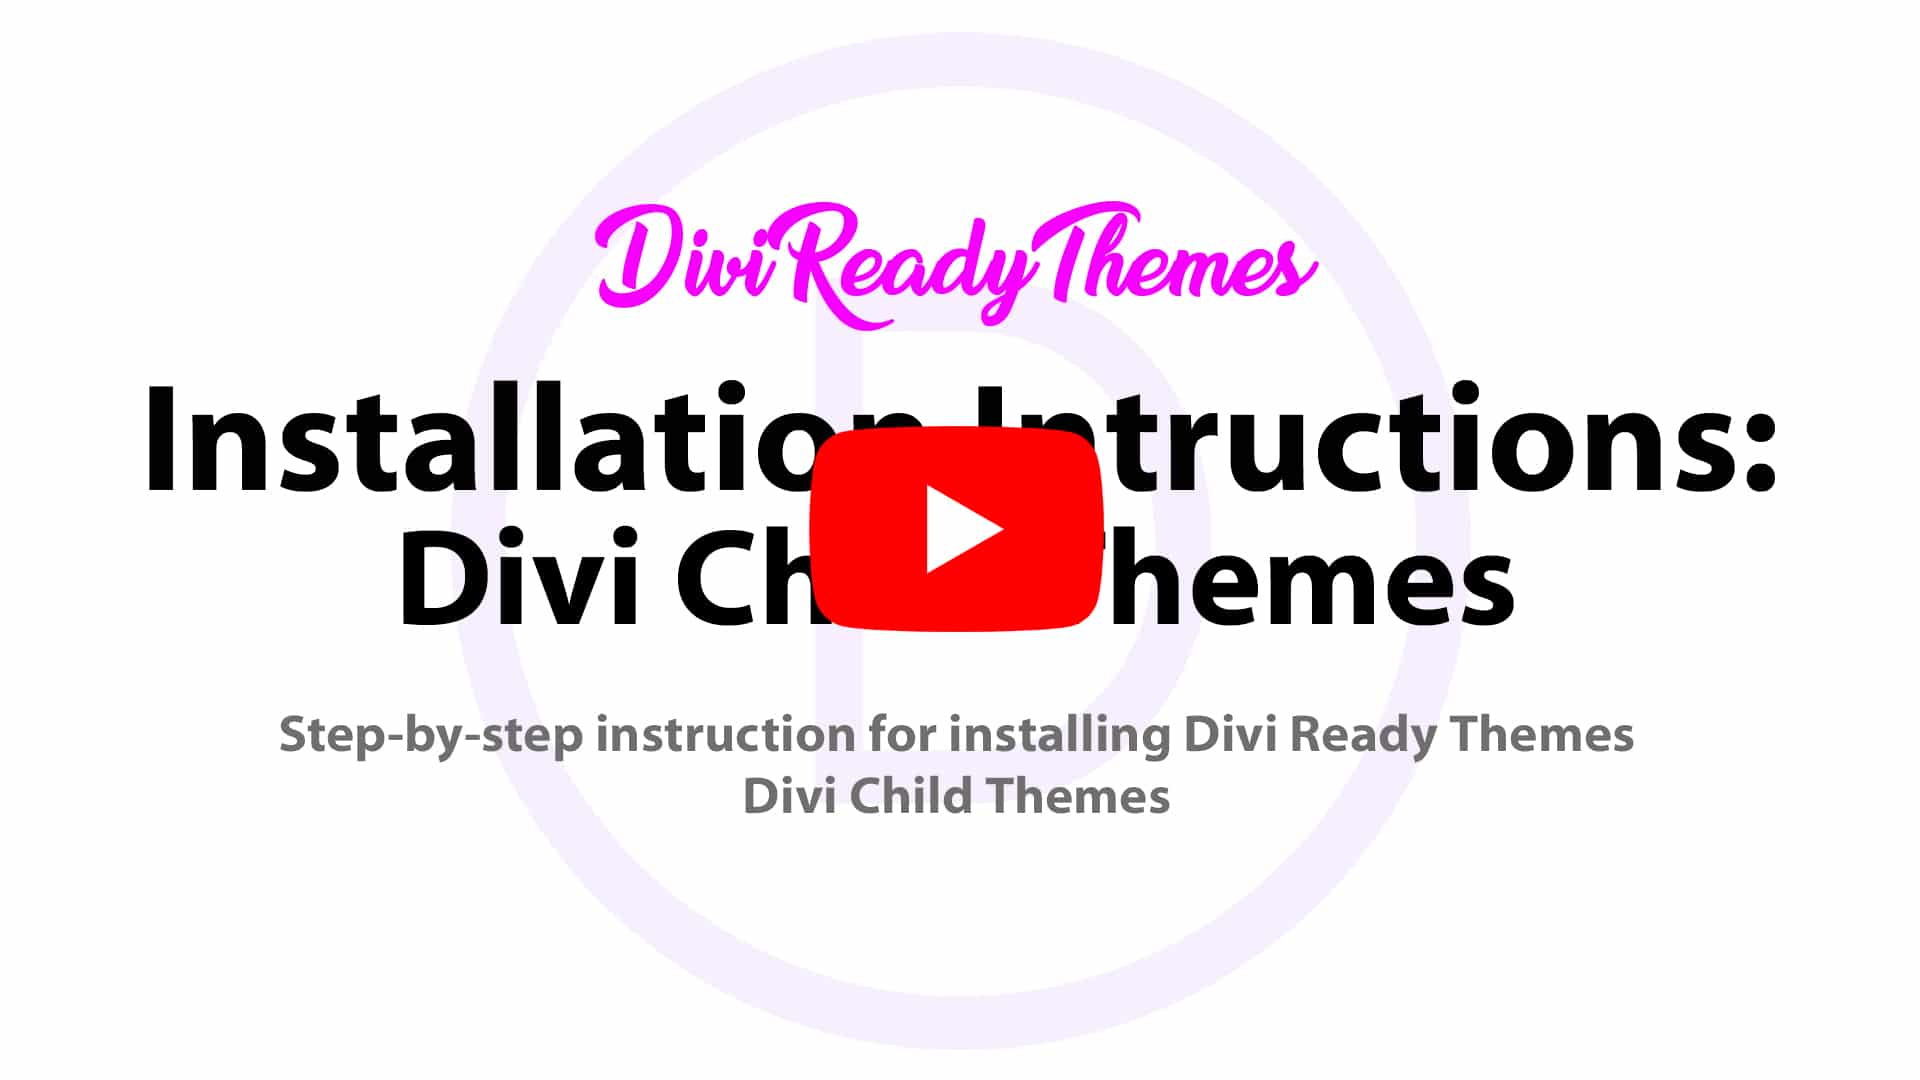 Installing a Divi Ready Theme's Divi Child Theme